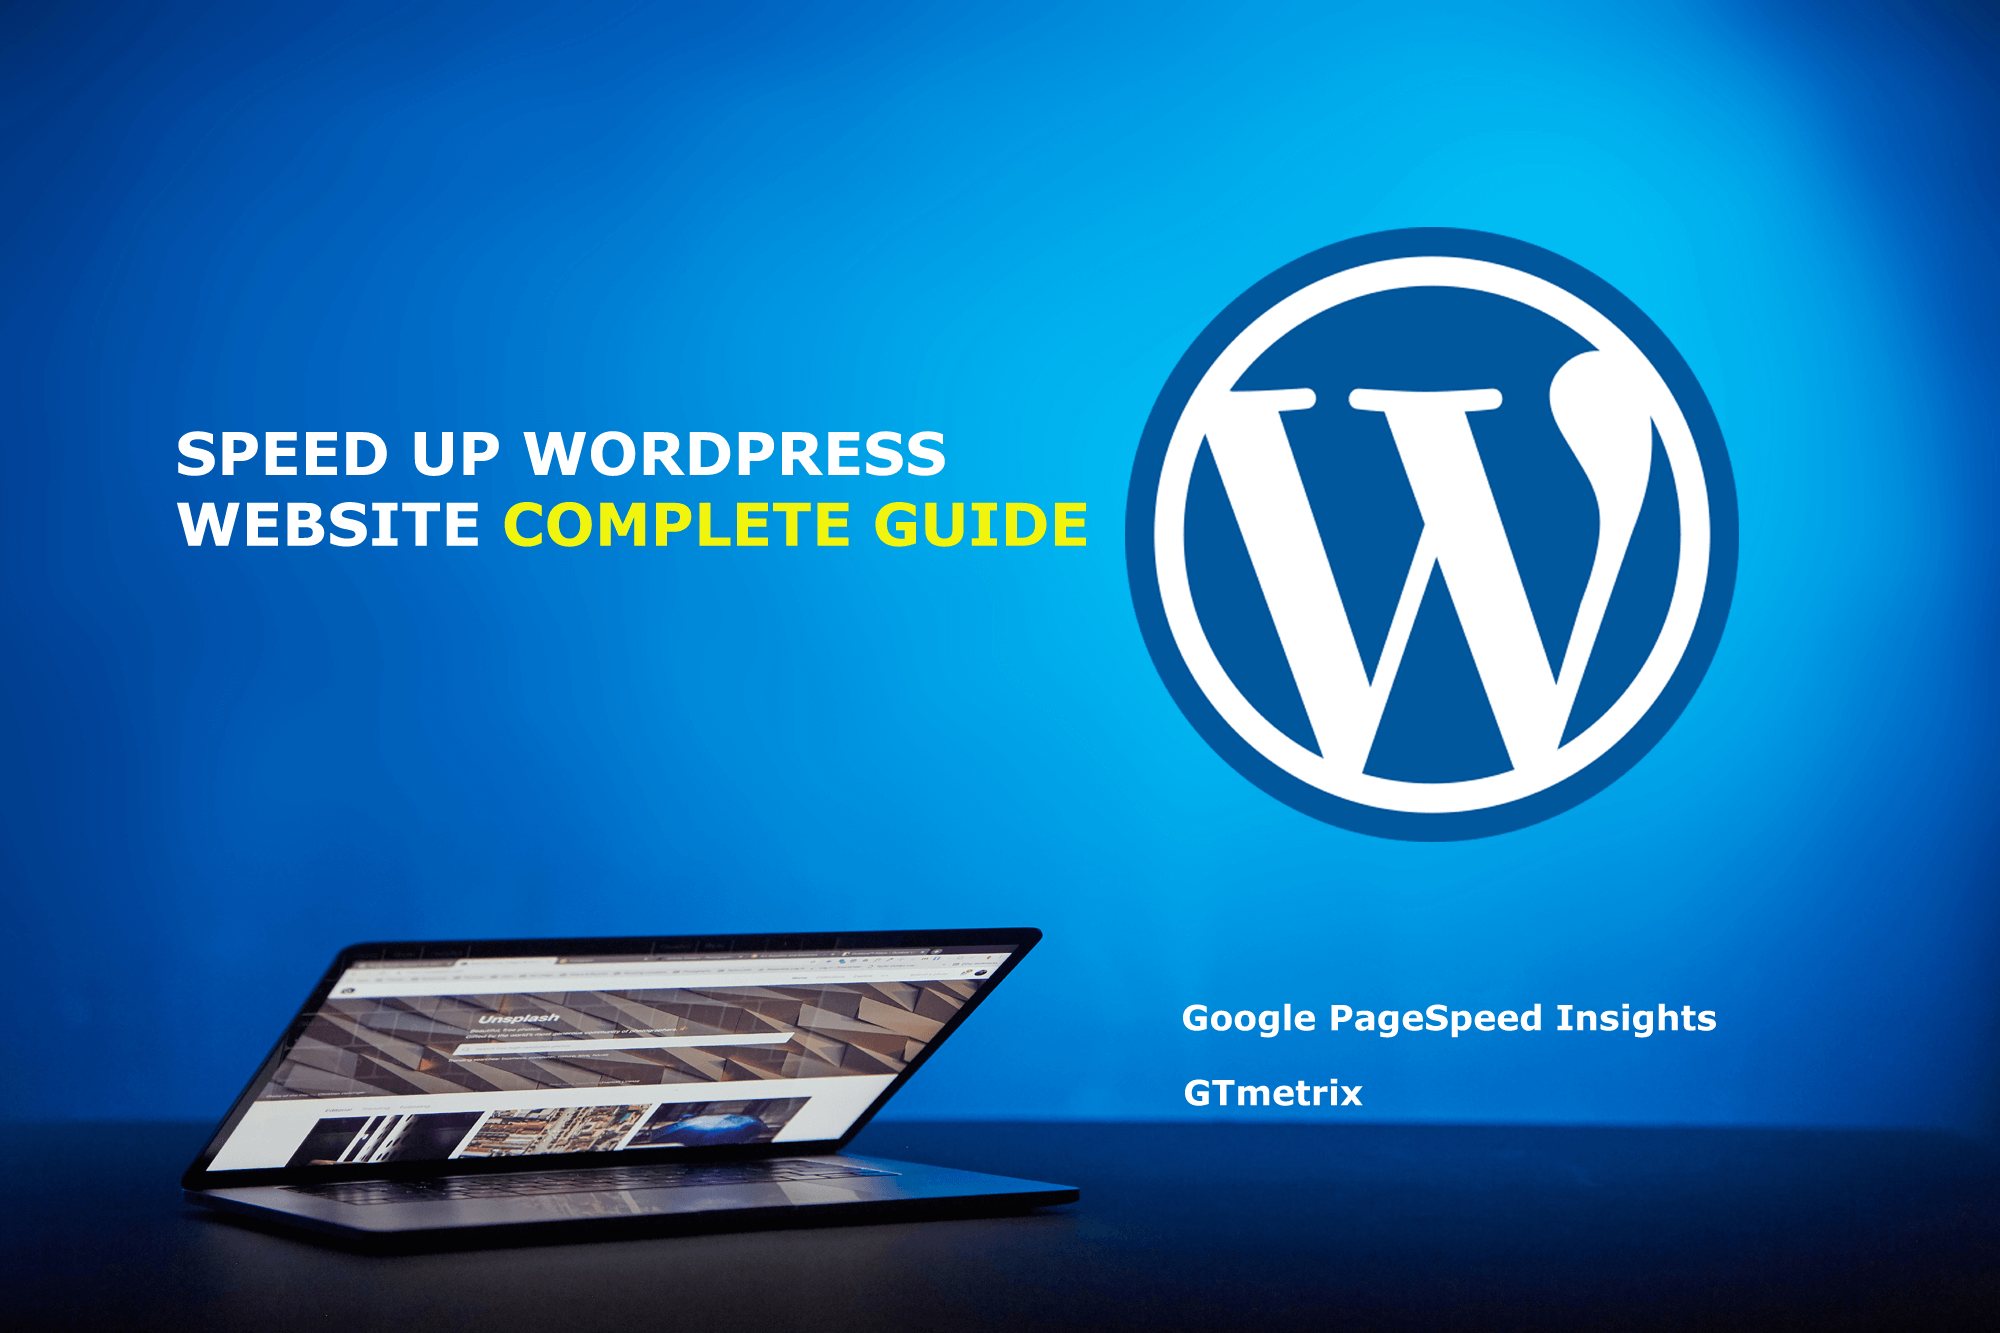 Speed Up WordPress Website Complete Guide Step by Step 2021